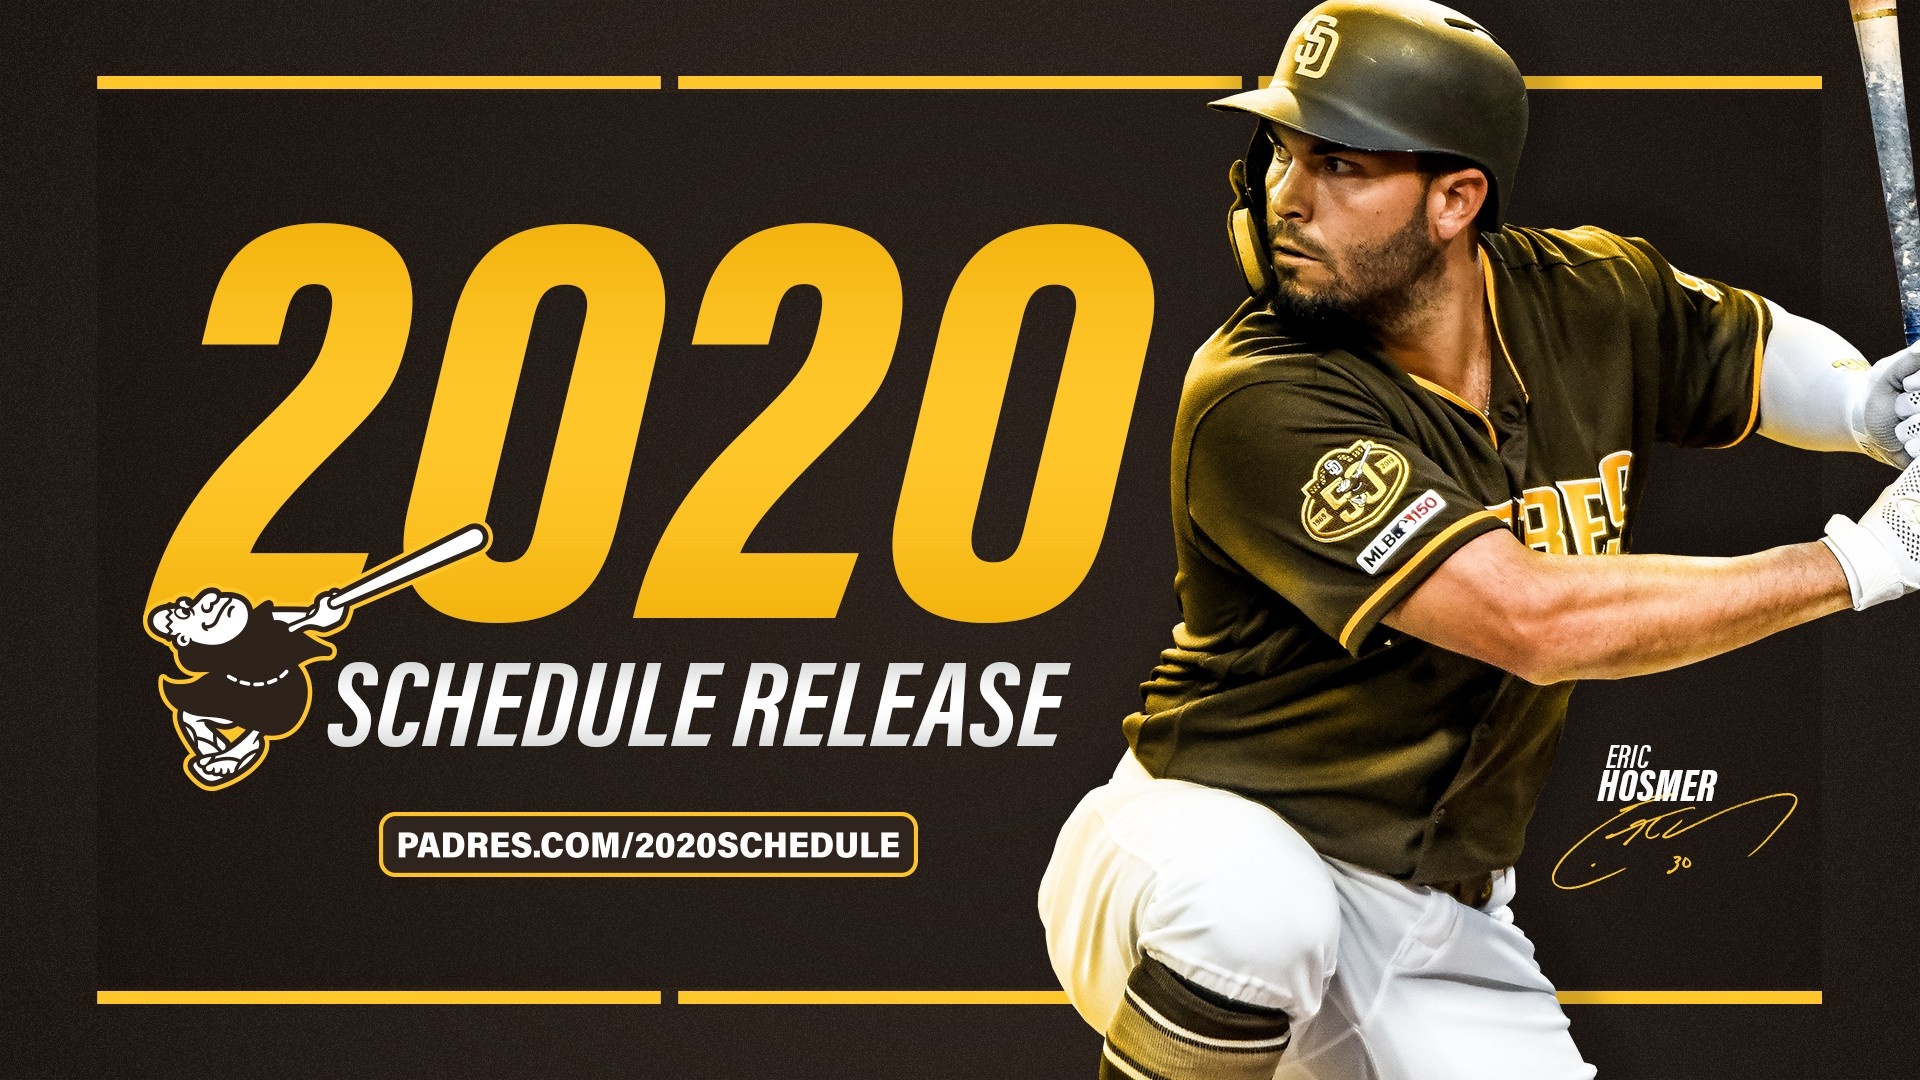 graphic about Cleveland Indians Printable Schedule identified as San Diego Padres Launch 2020 Plan - FriarWire